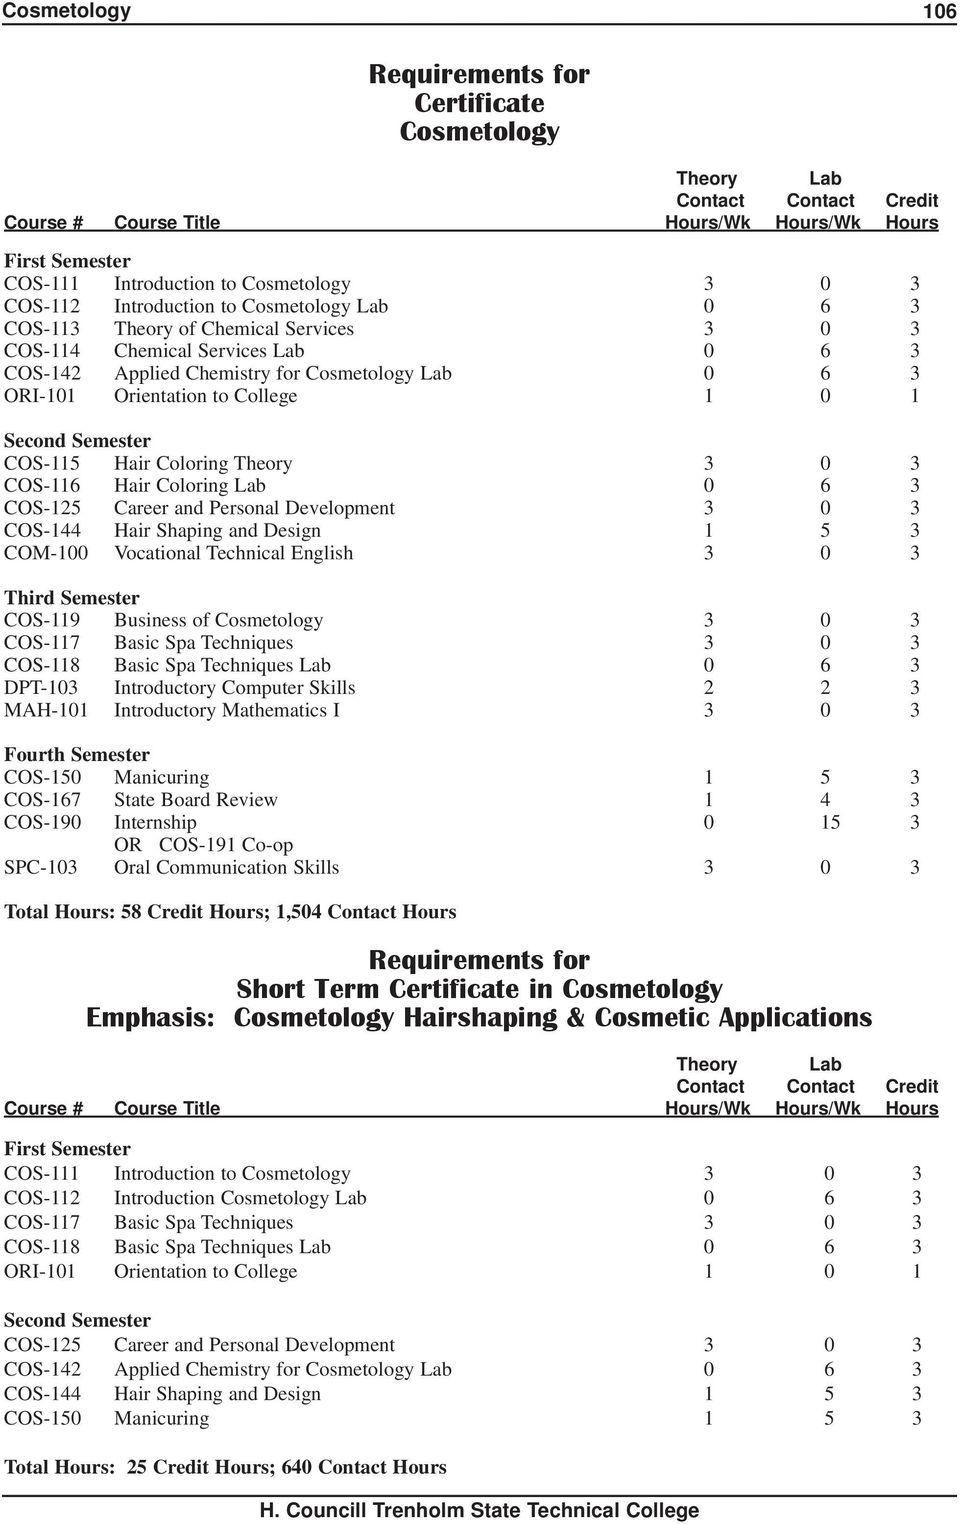 Design 1 5 3 COM-100 Vocational Technical English 3 0 3 Third Semester COS-119 Business of Cosmetology 3 0 3 COS-117 Basic Spa Techniques 3 0 3 COS-118 Basic Spa Techniques Lab 0 6 3 DPT-103